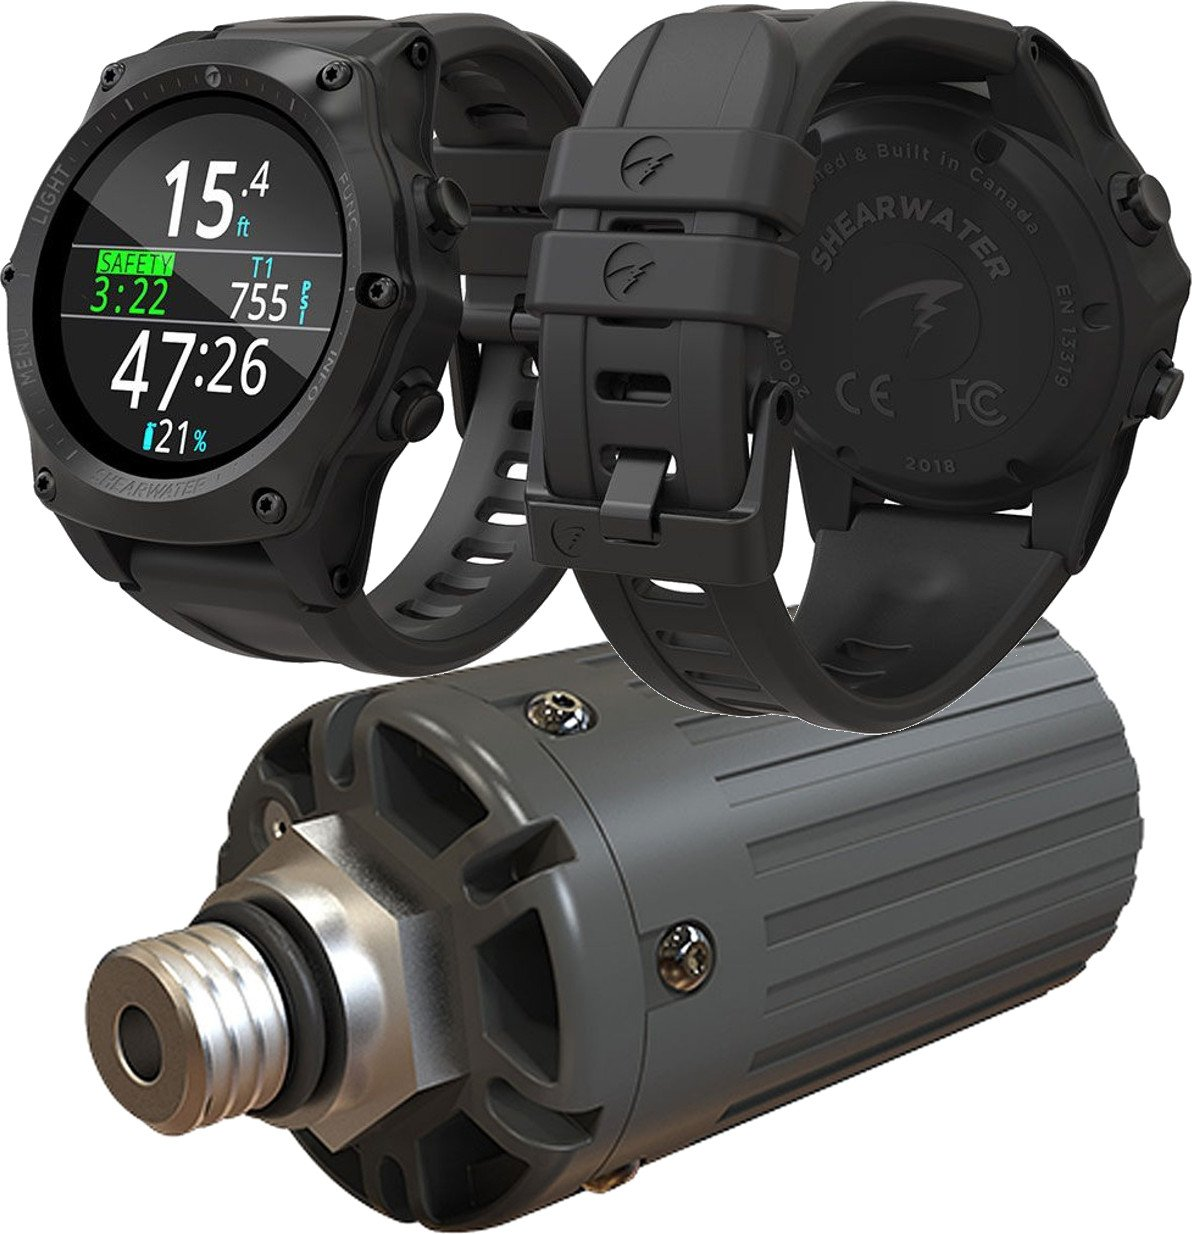 Shearwater Research Teric Wrist Dive Computer with Transmitter by Shearwater